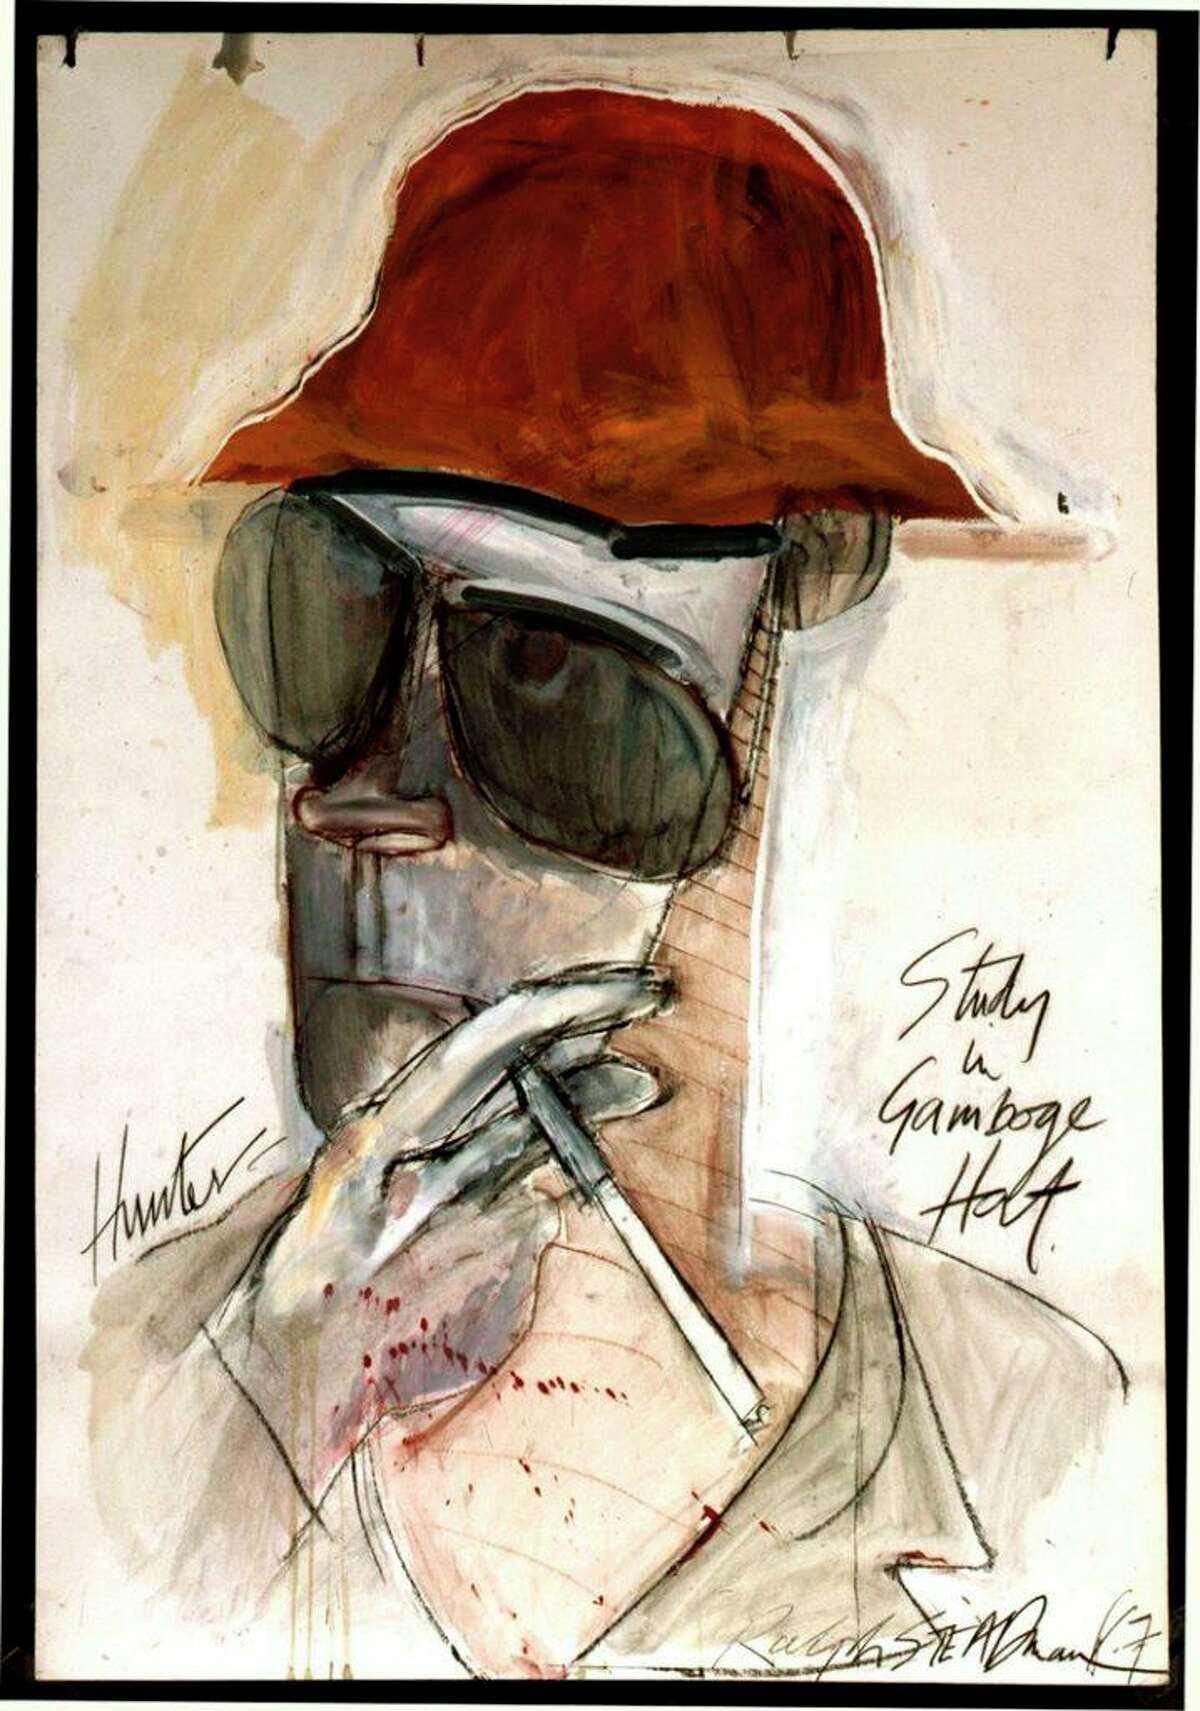 Used with permission by Ralph Steadman, courtesy of Michael Lindenberger.